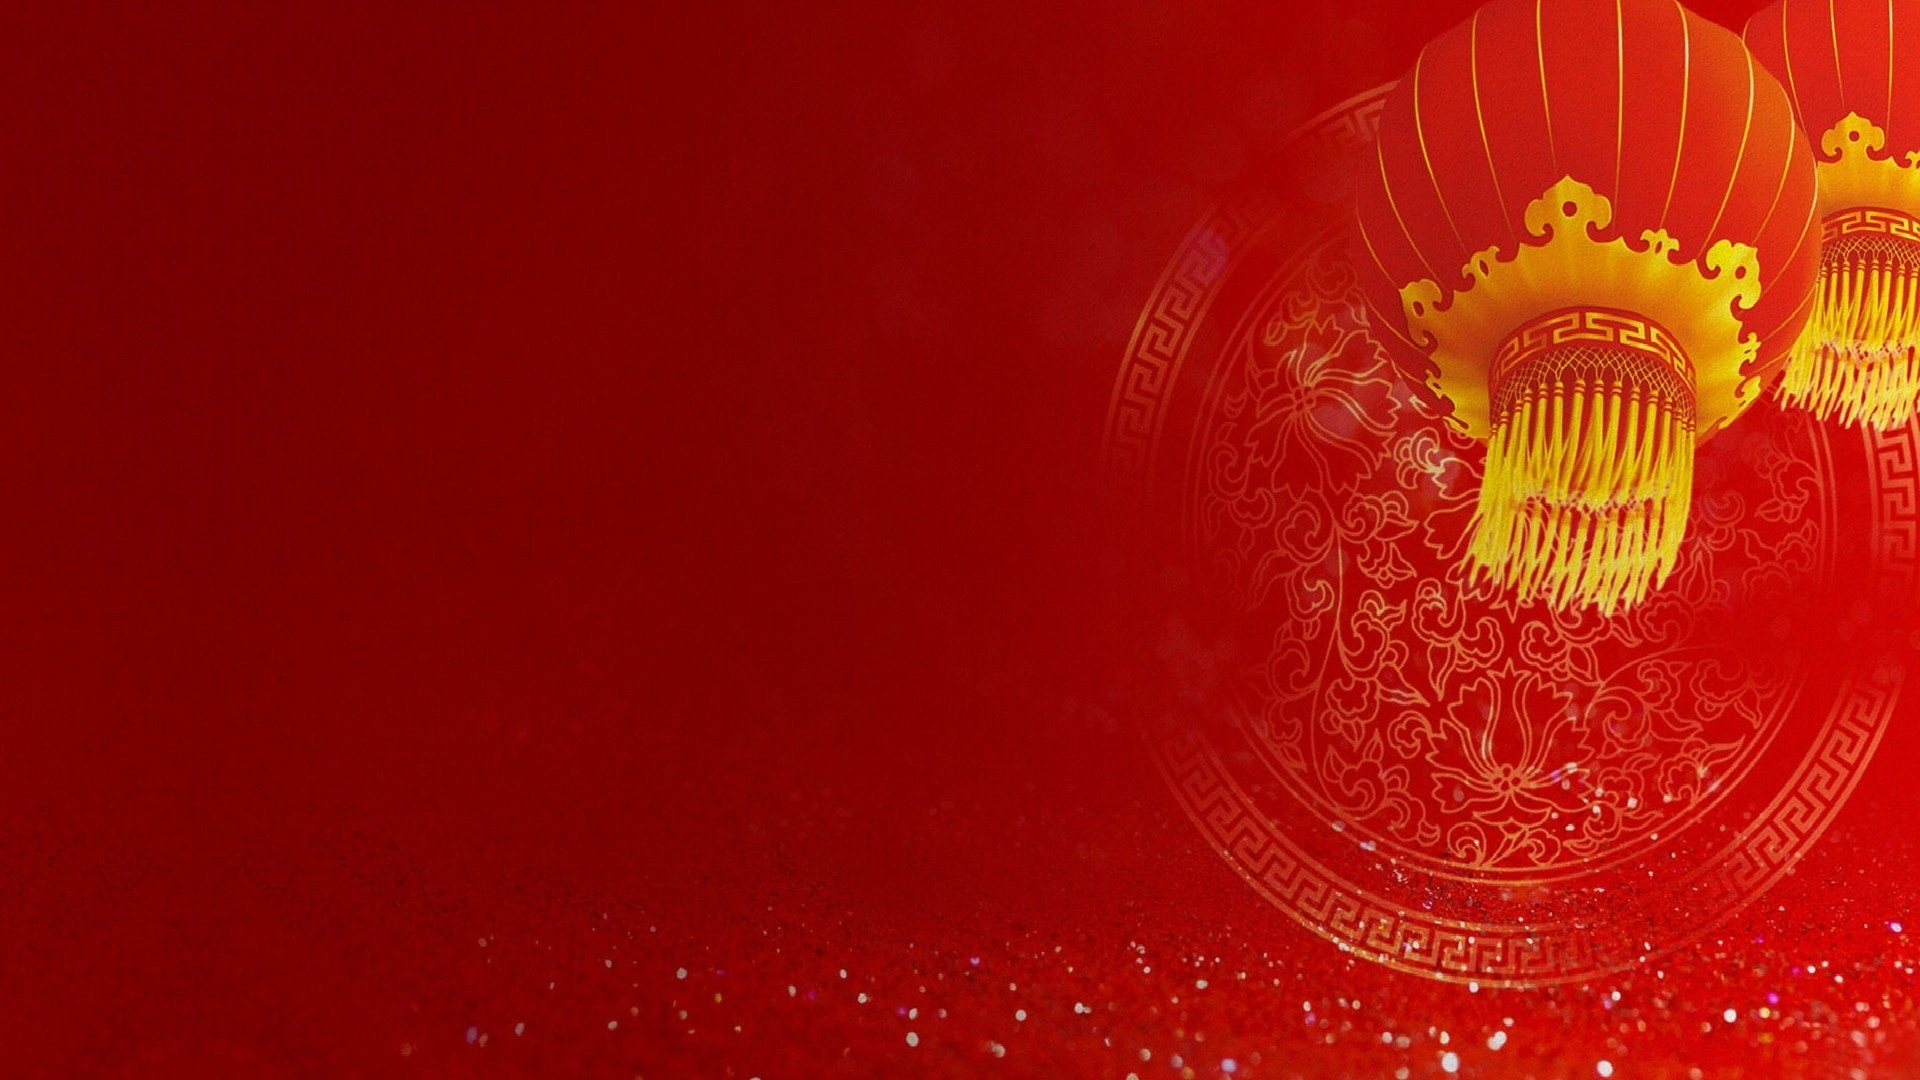 chinese new year 2014 hd - wallpaper, high definition, high quality